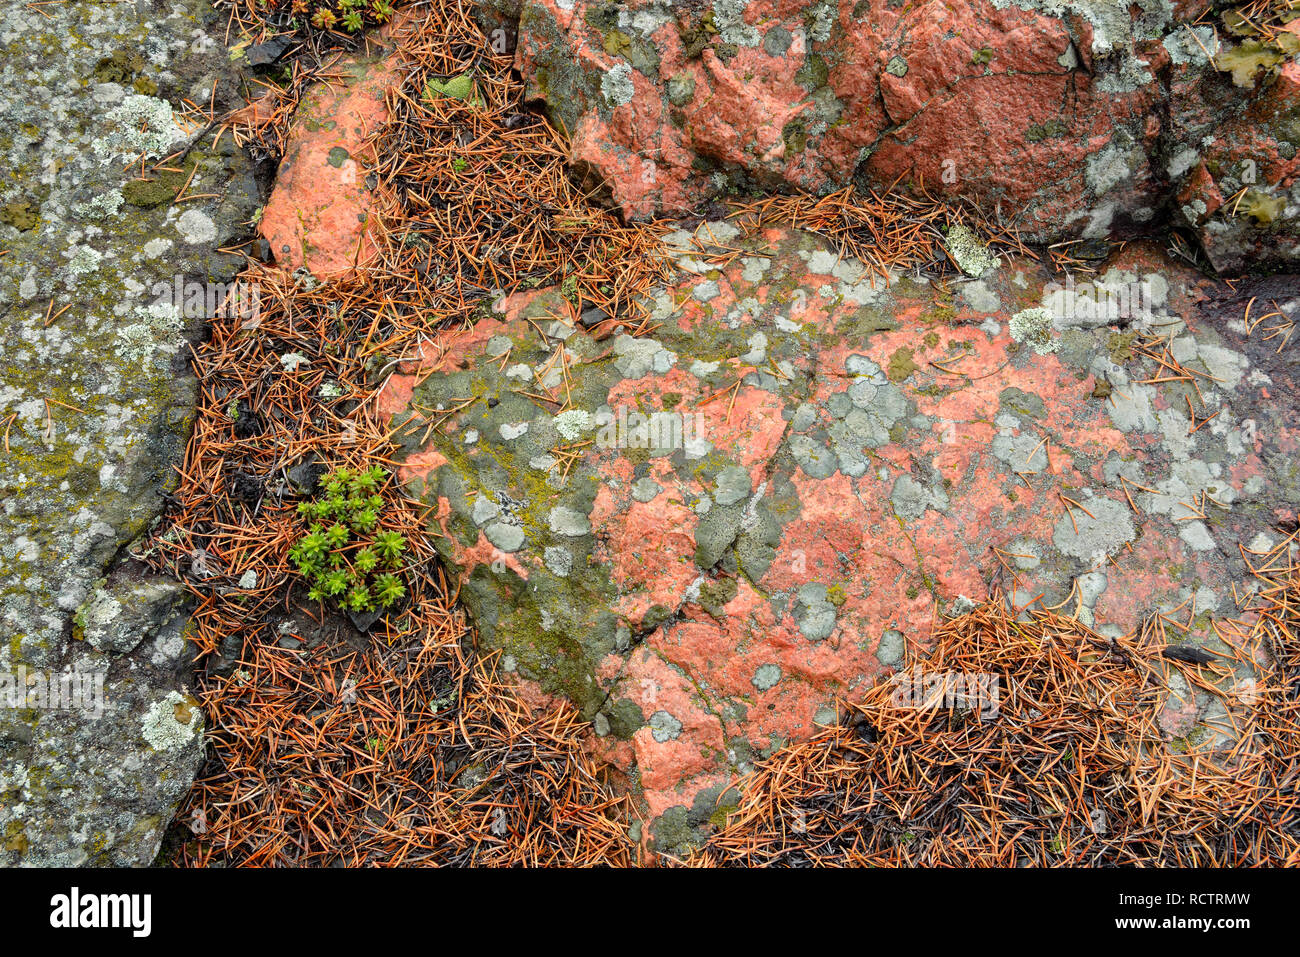 Precambrian shield granite with an orange igneous dyke, Yellowknife, Northwest Territories, Canada - Stock Image